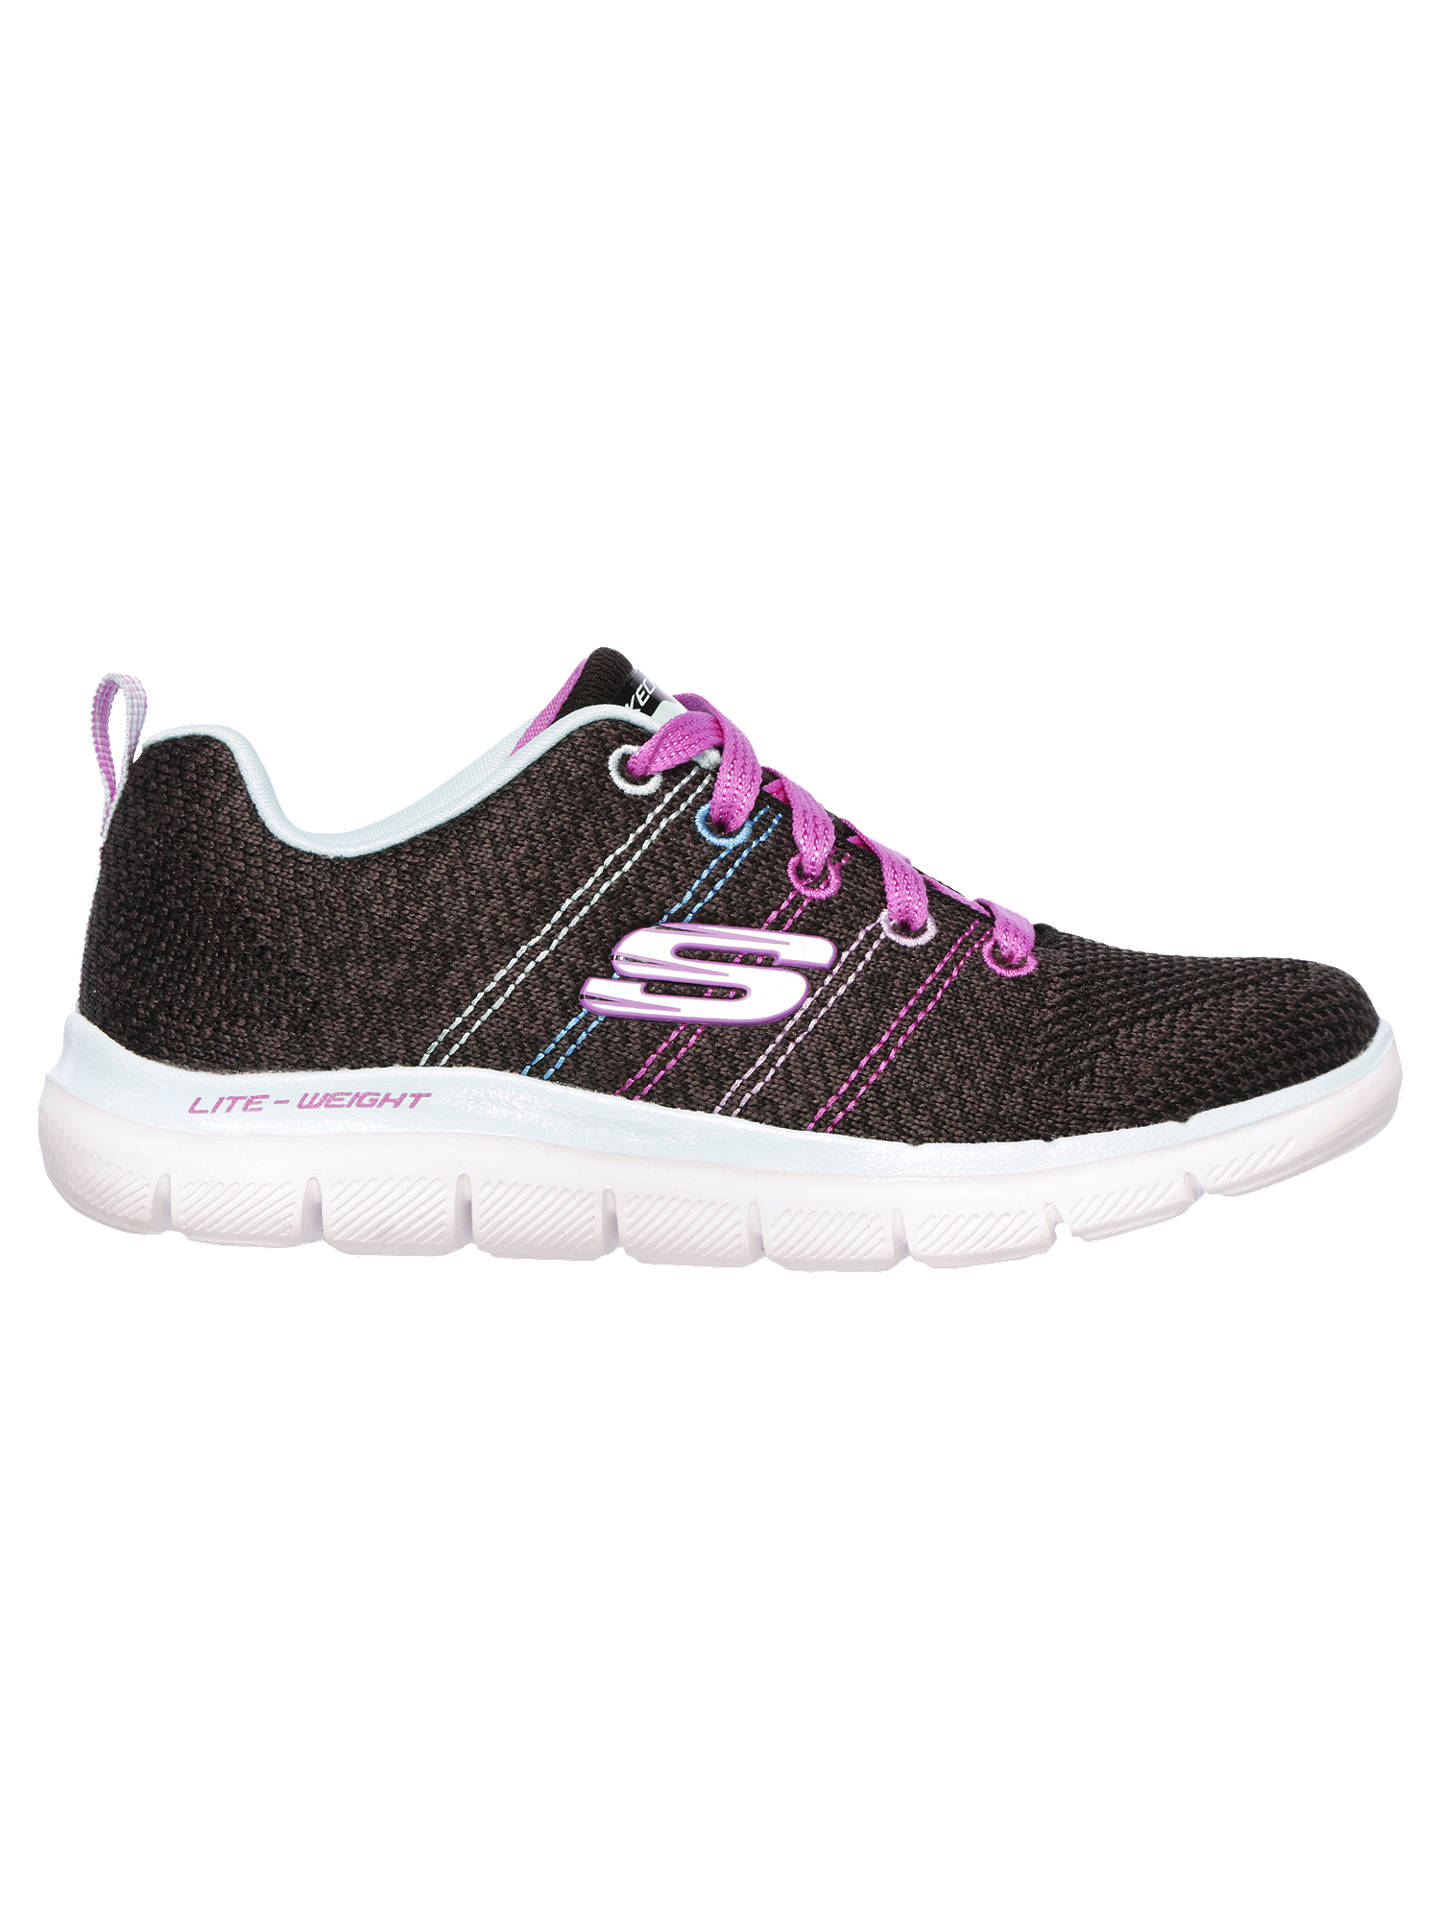 Buy Skechers Children's Skech Appeal 2.0 High Energy Trainers, Black, 33 Online at johnlewis.com